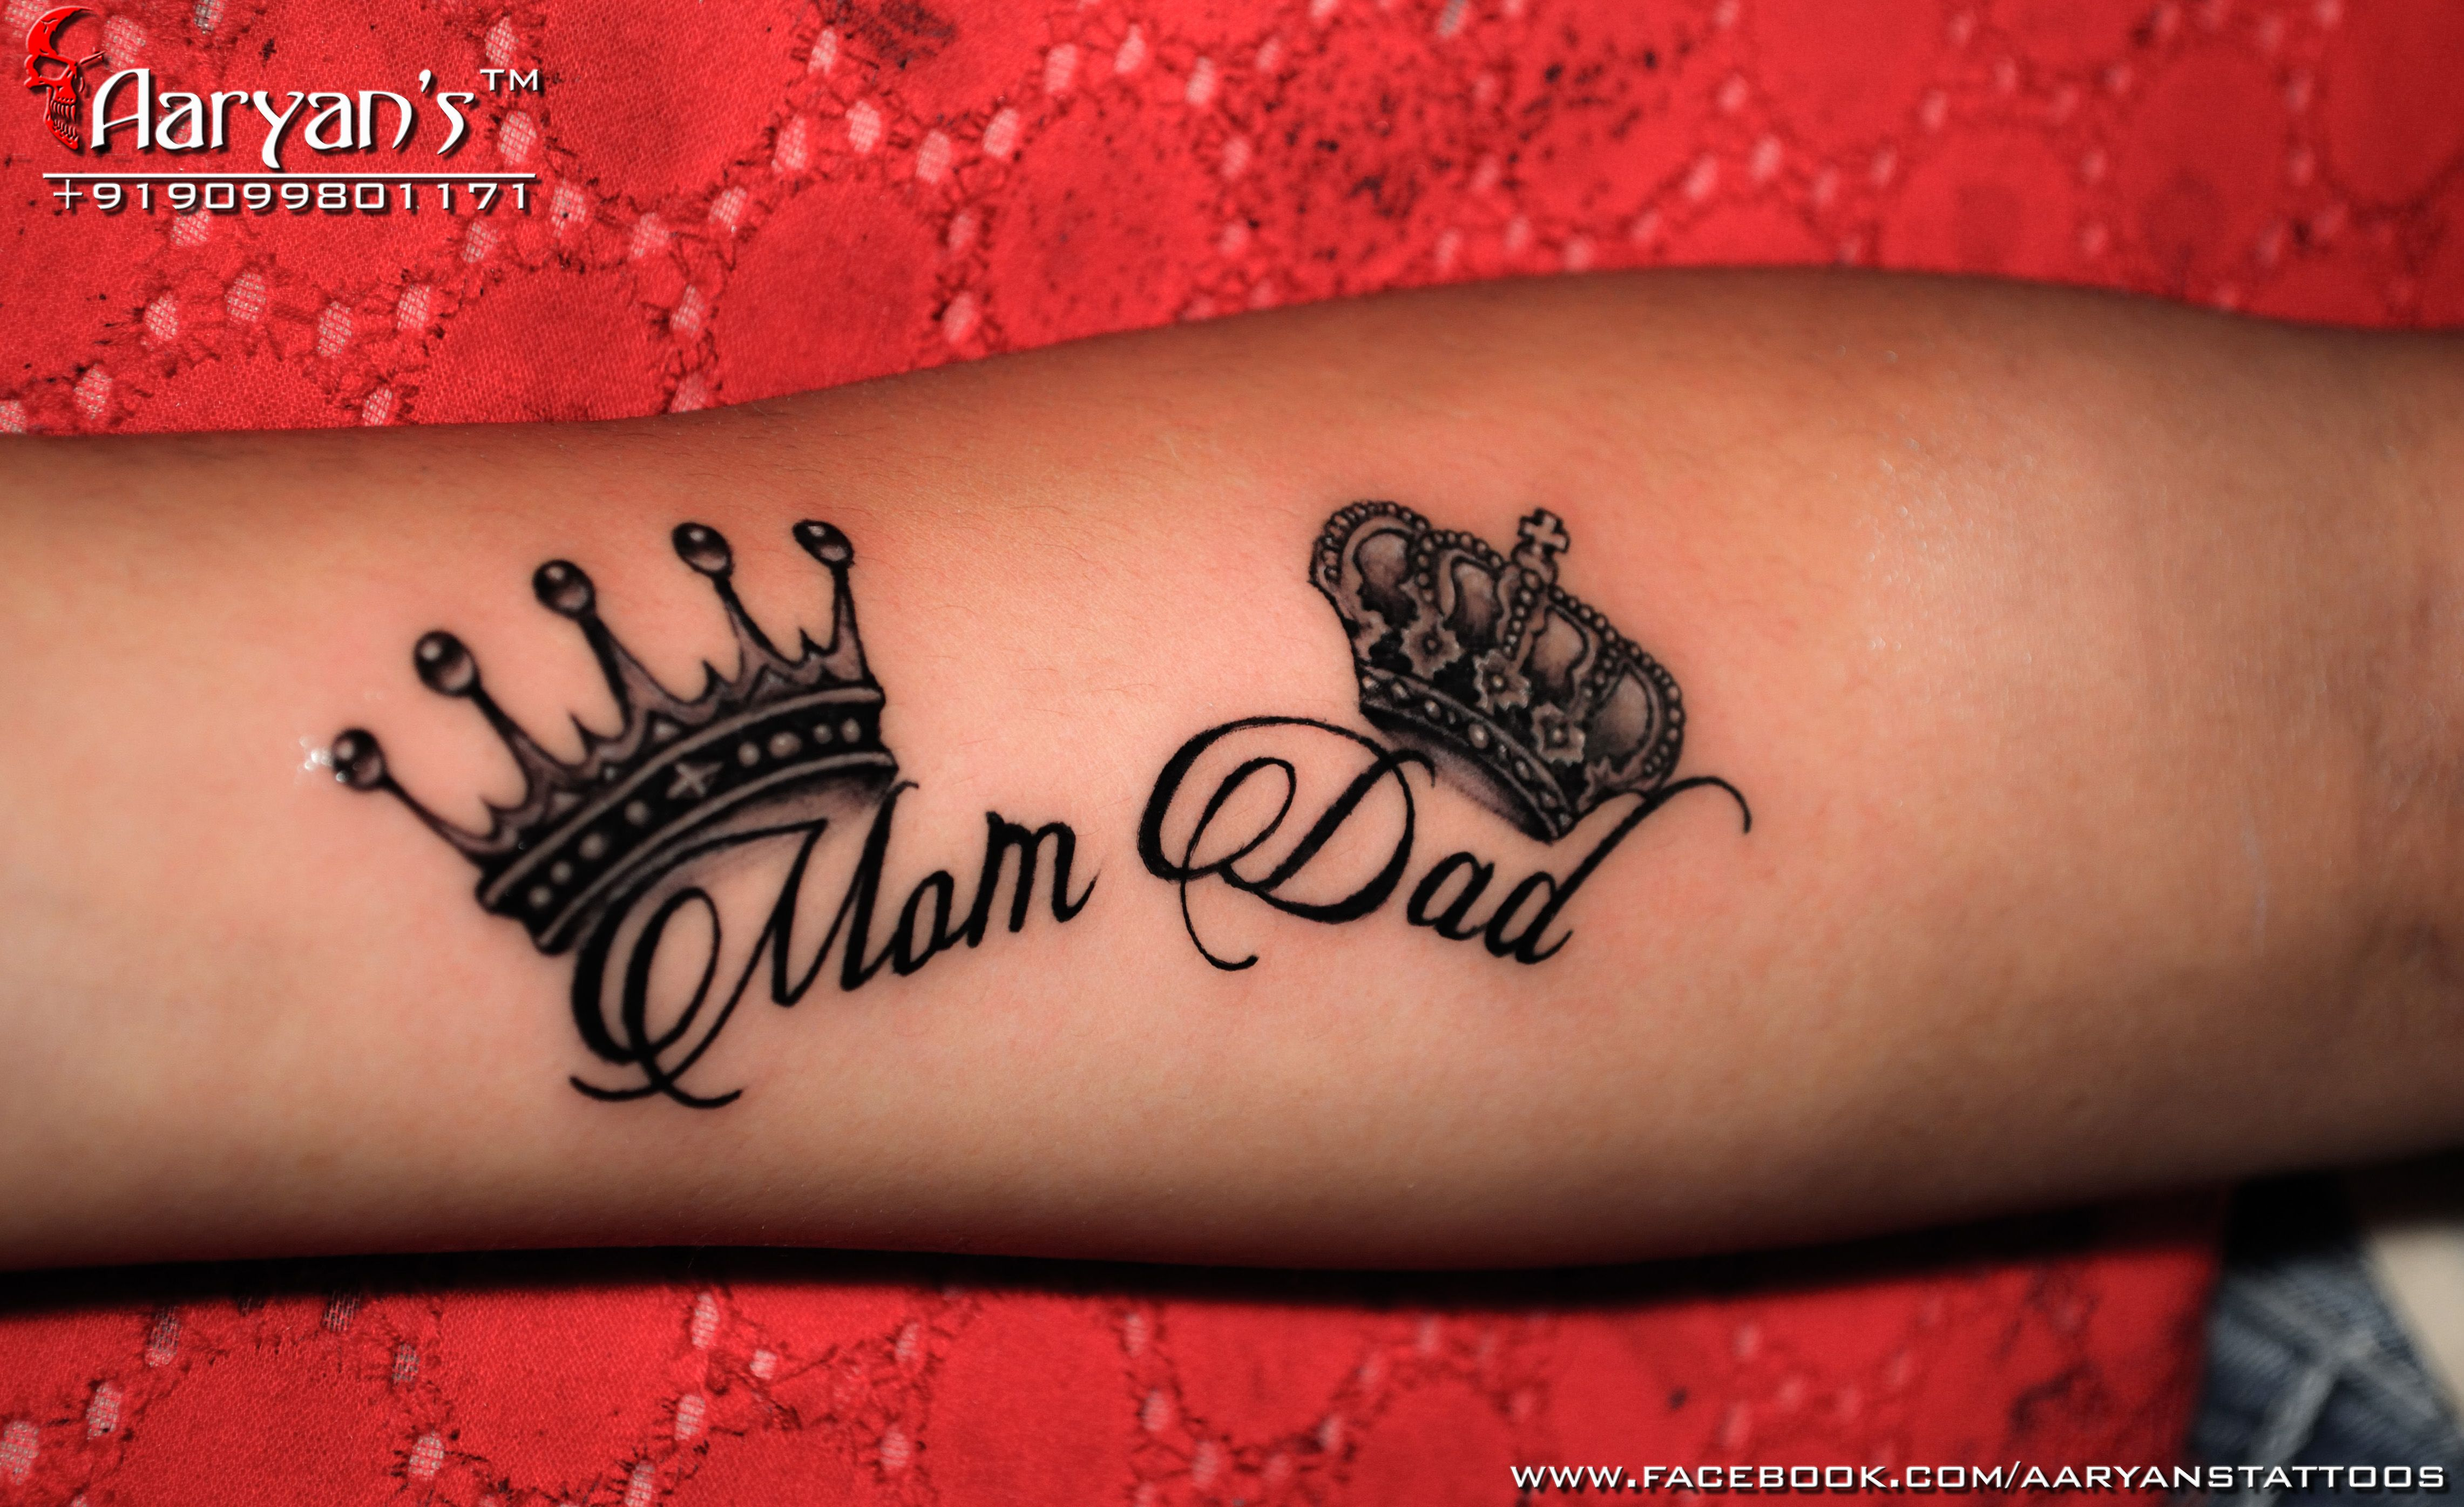 28 mom and dad tattoo 100 s of mom and dad tattoo design ideas pictures gallery mom and. Black Bedroom Furniture Sets. Home Design Ideas